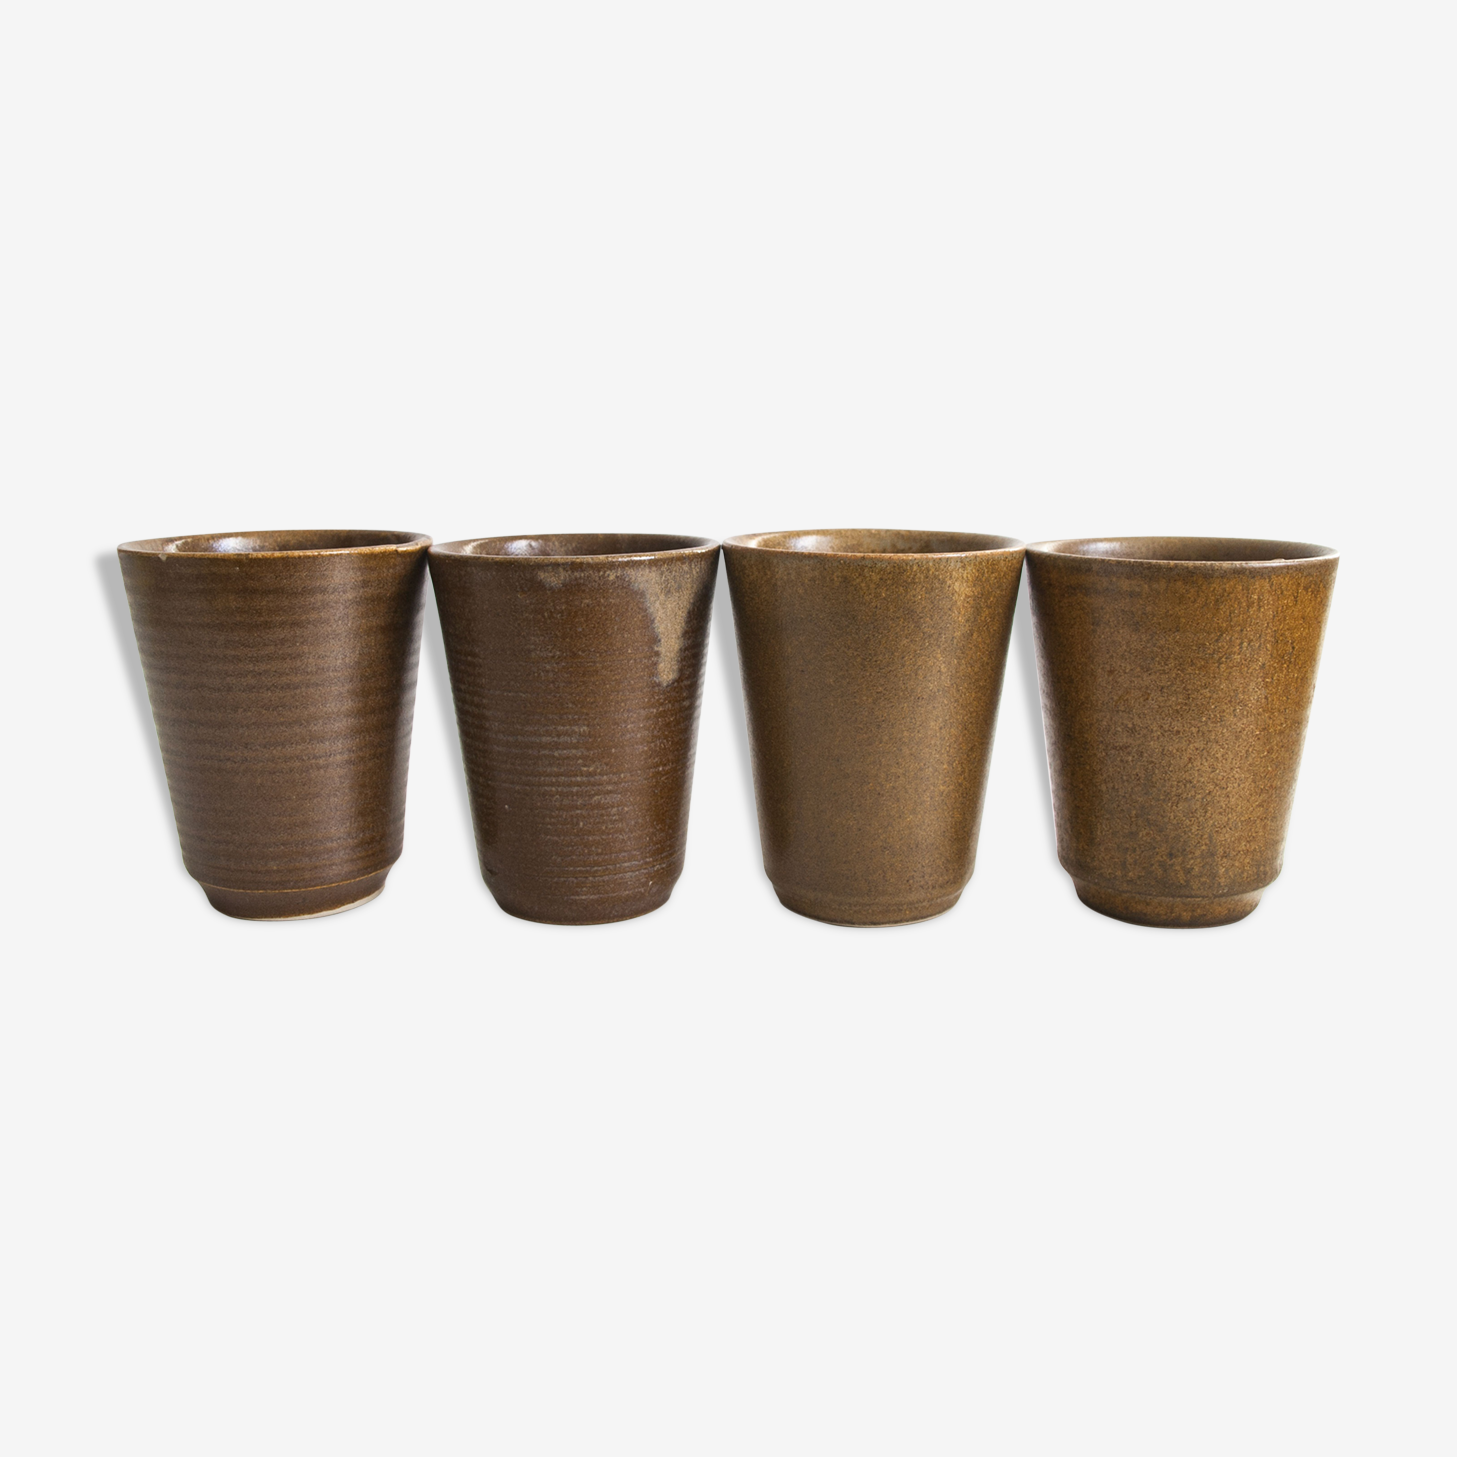 Cups in stoneware Digoin factory